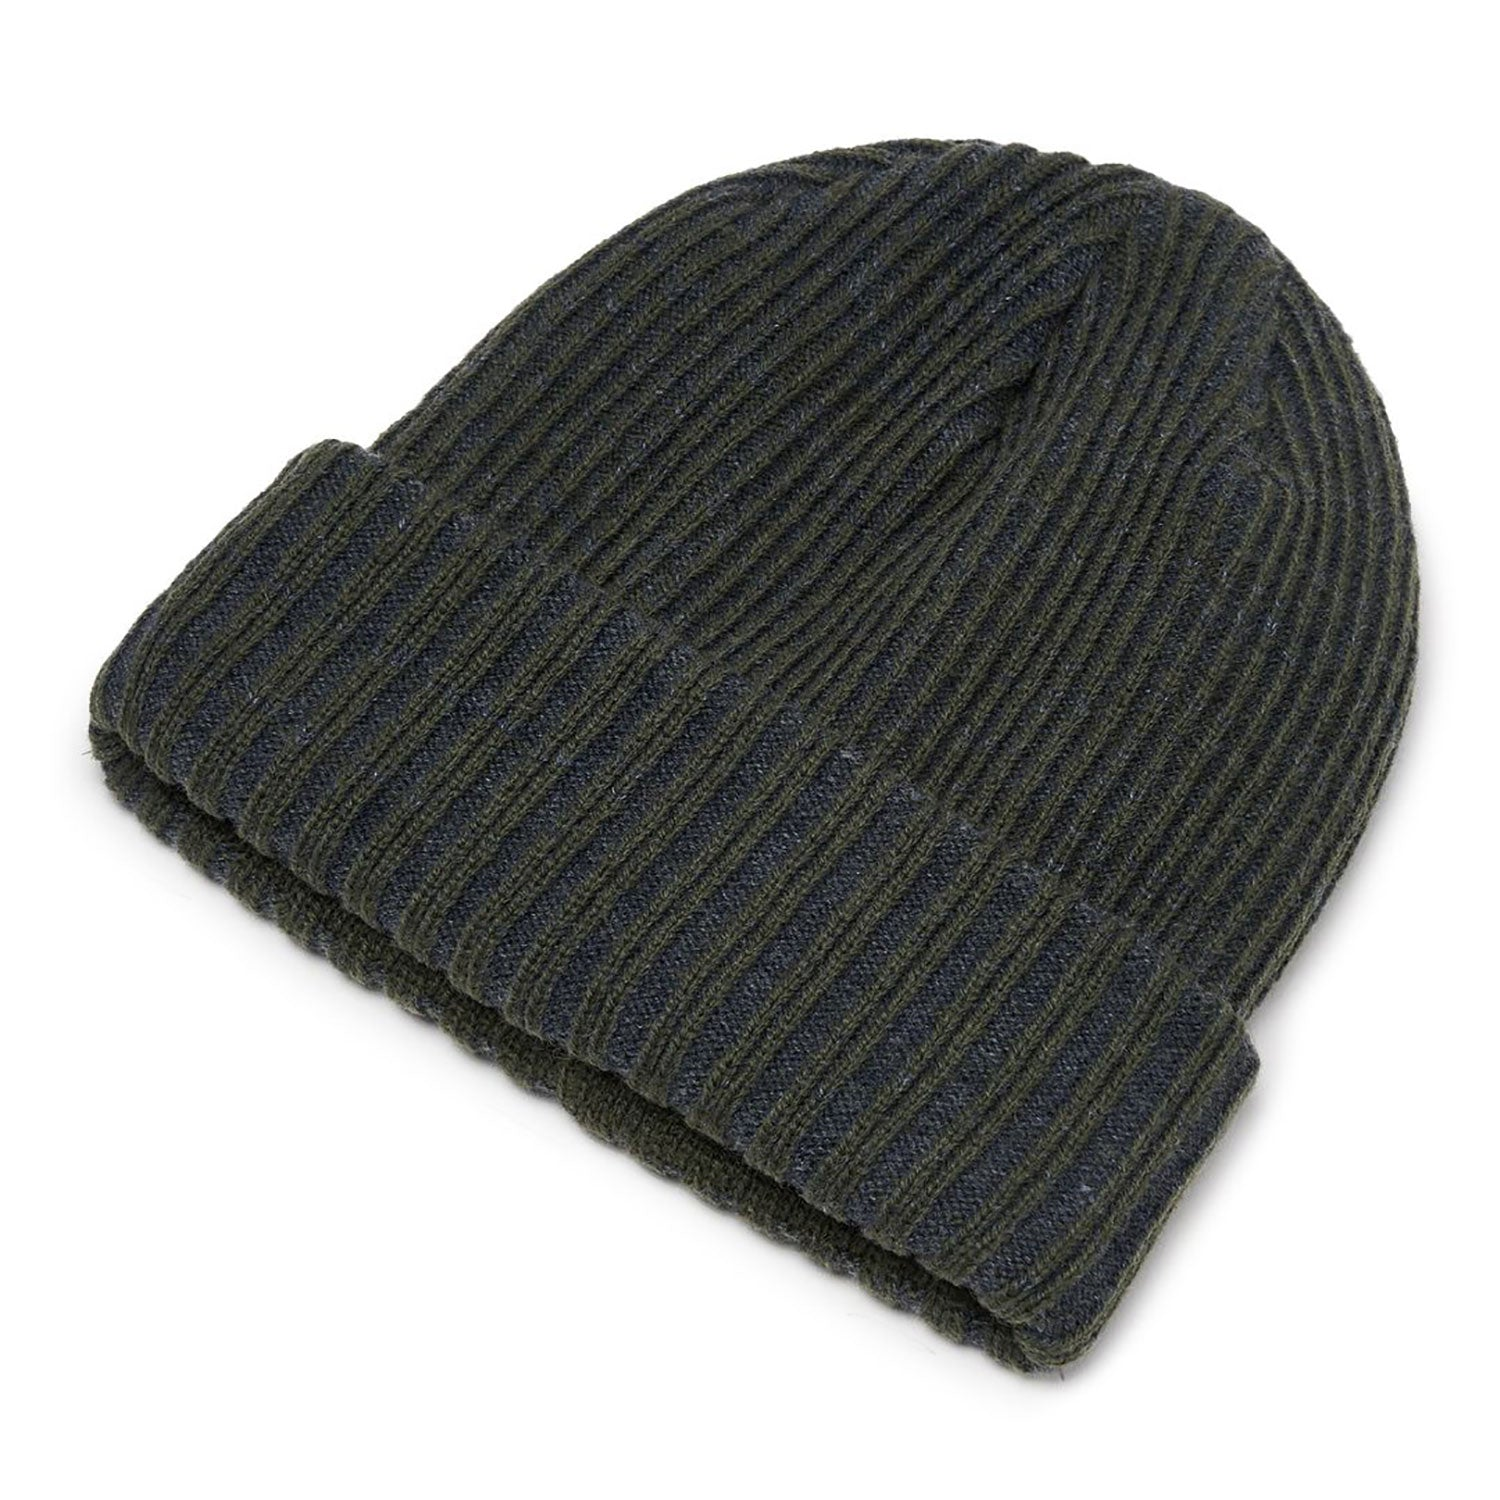 Creative Boys Timberland Beanie Winter Hat Size M Suit 1-2 Yrs Highly Polished Boy's Accessories Hats